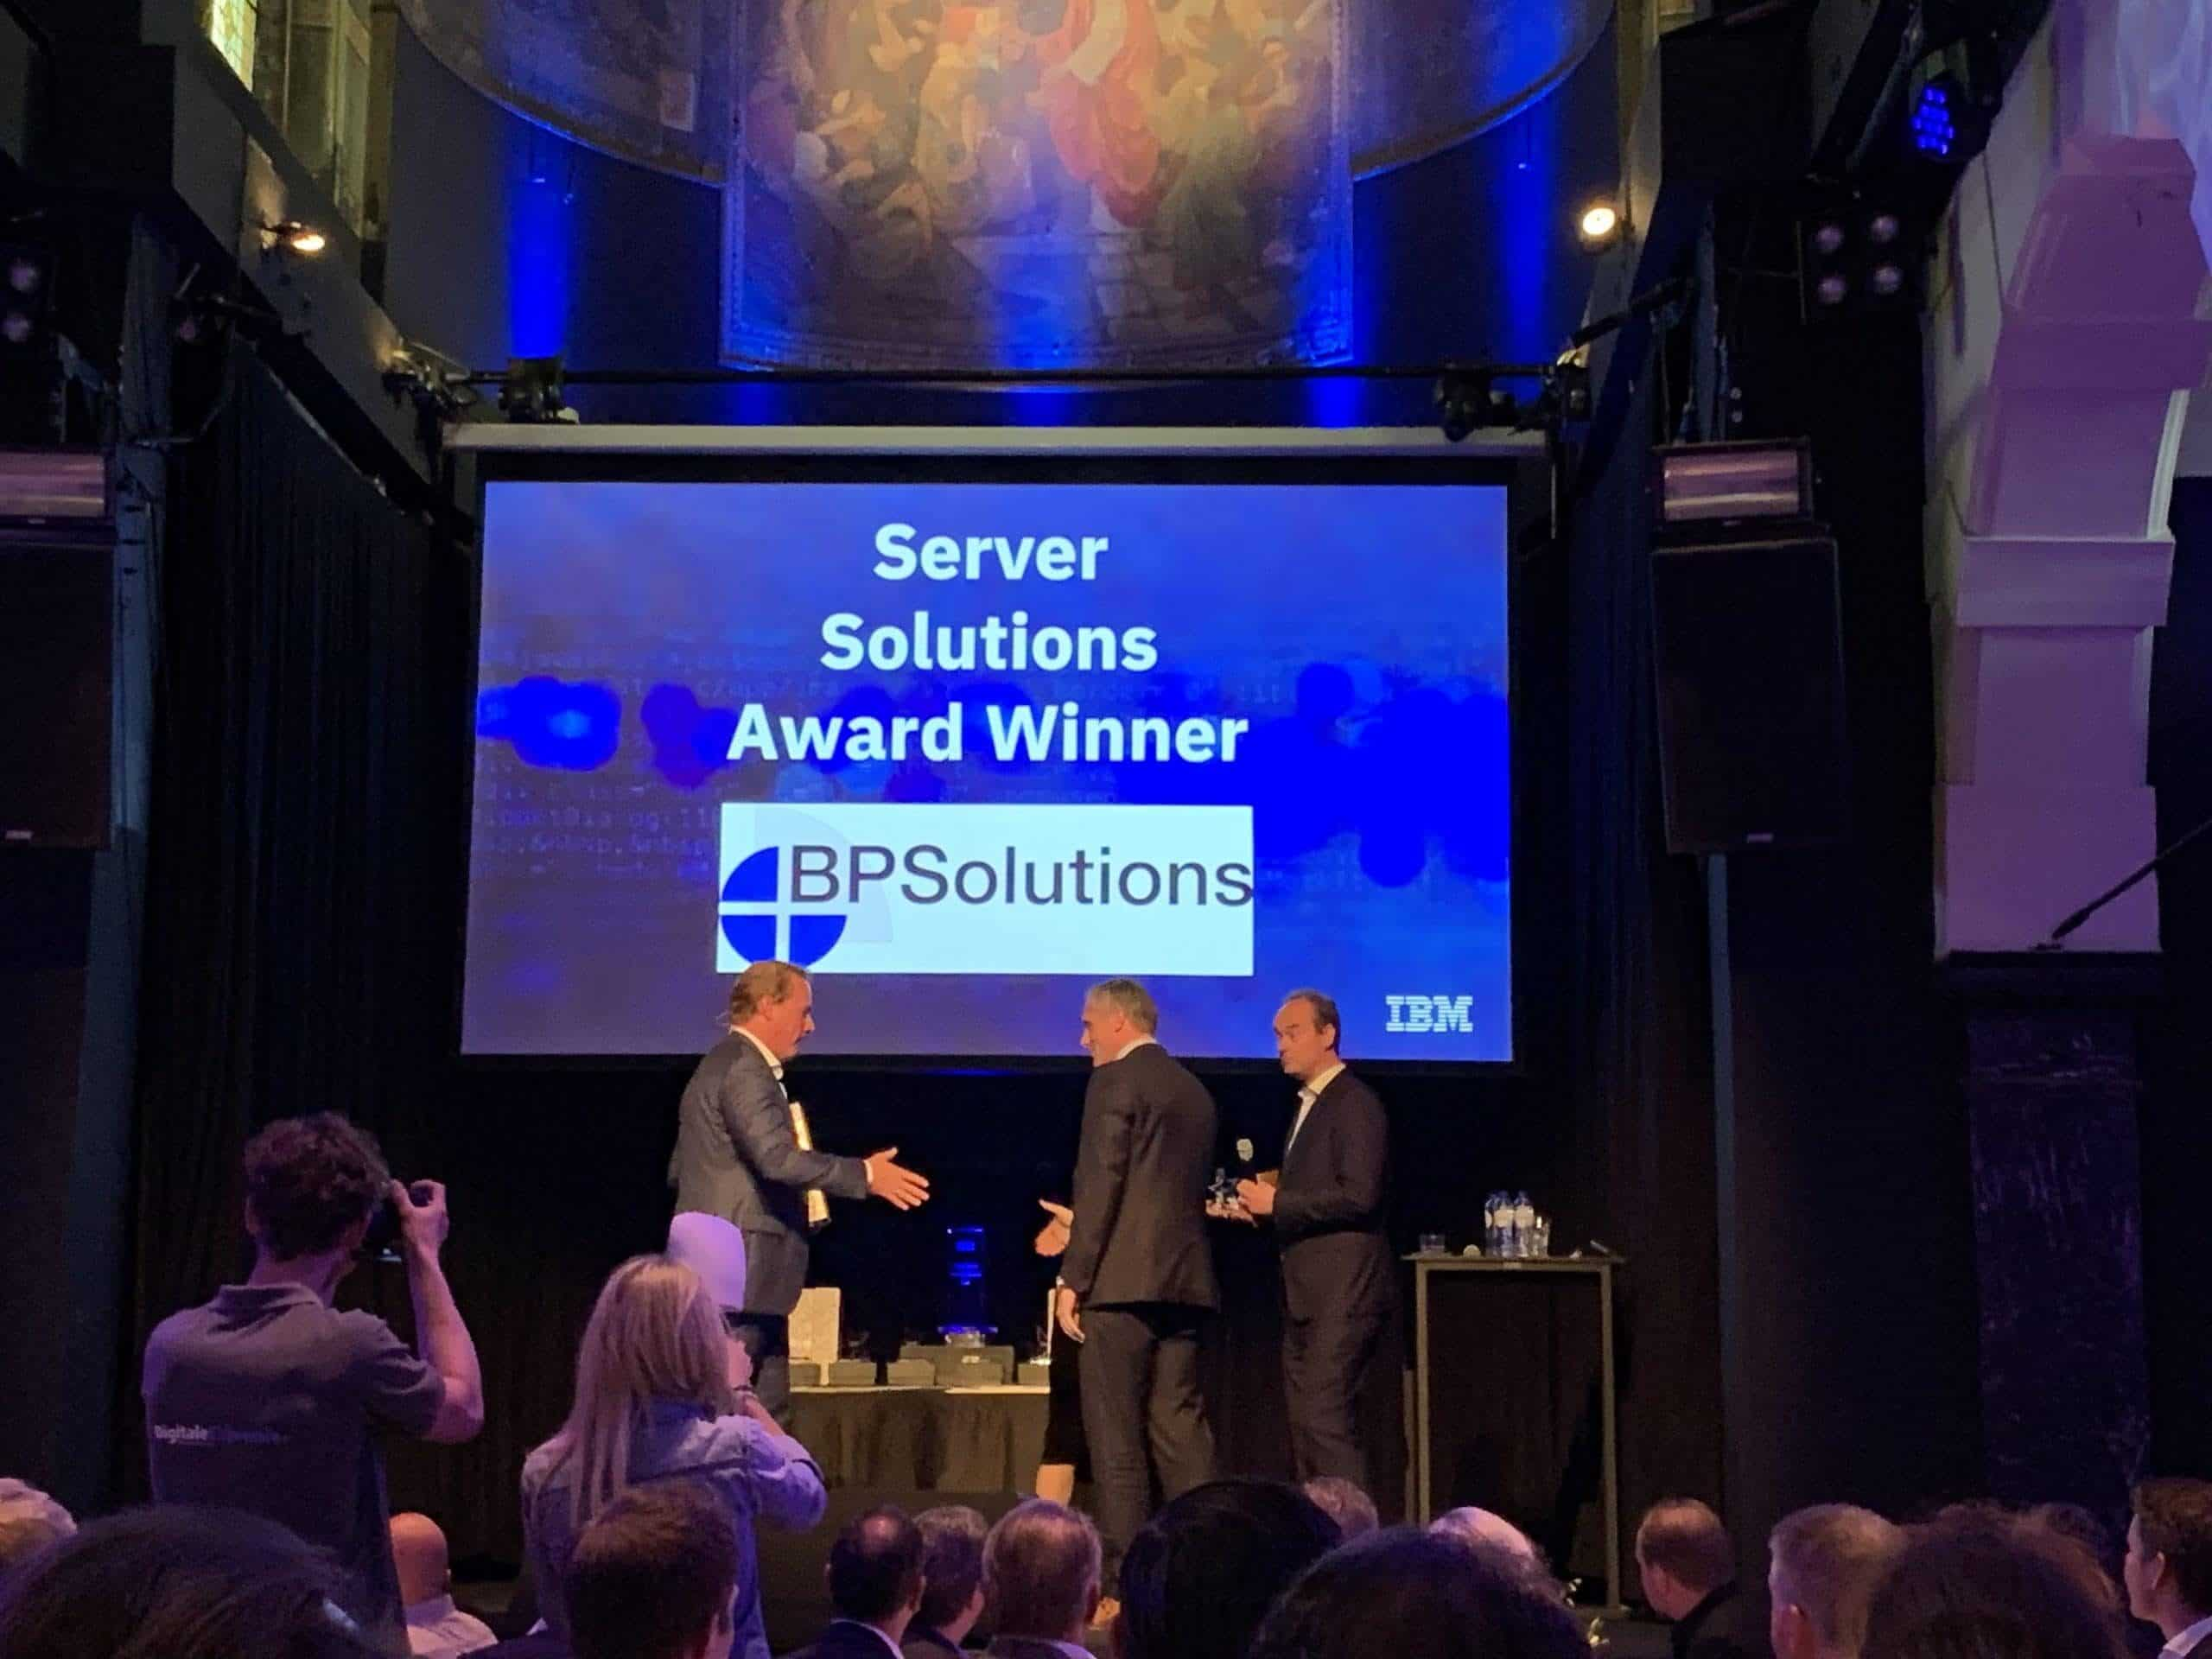 BPSolutions wint IBM Server Solution Award 2019